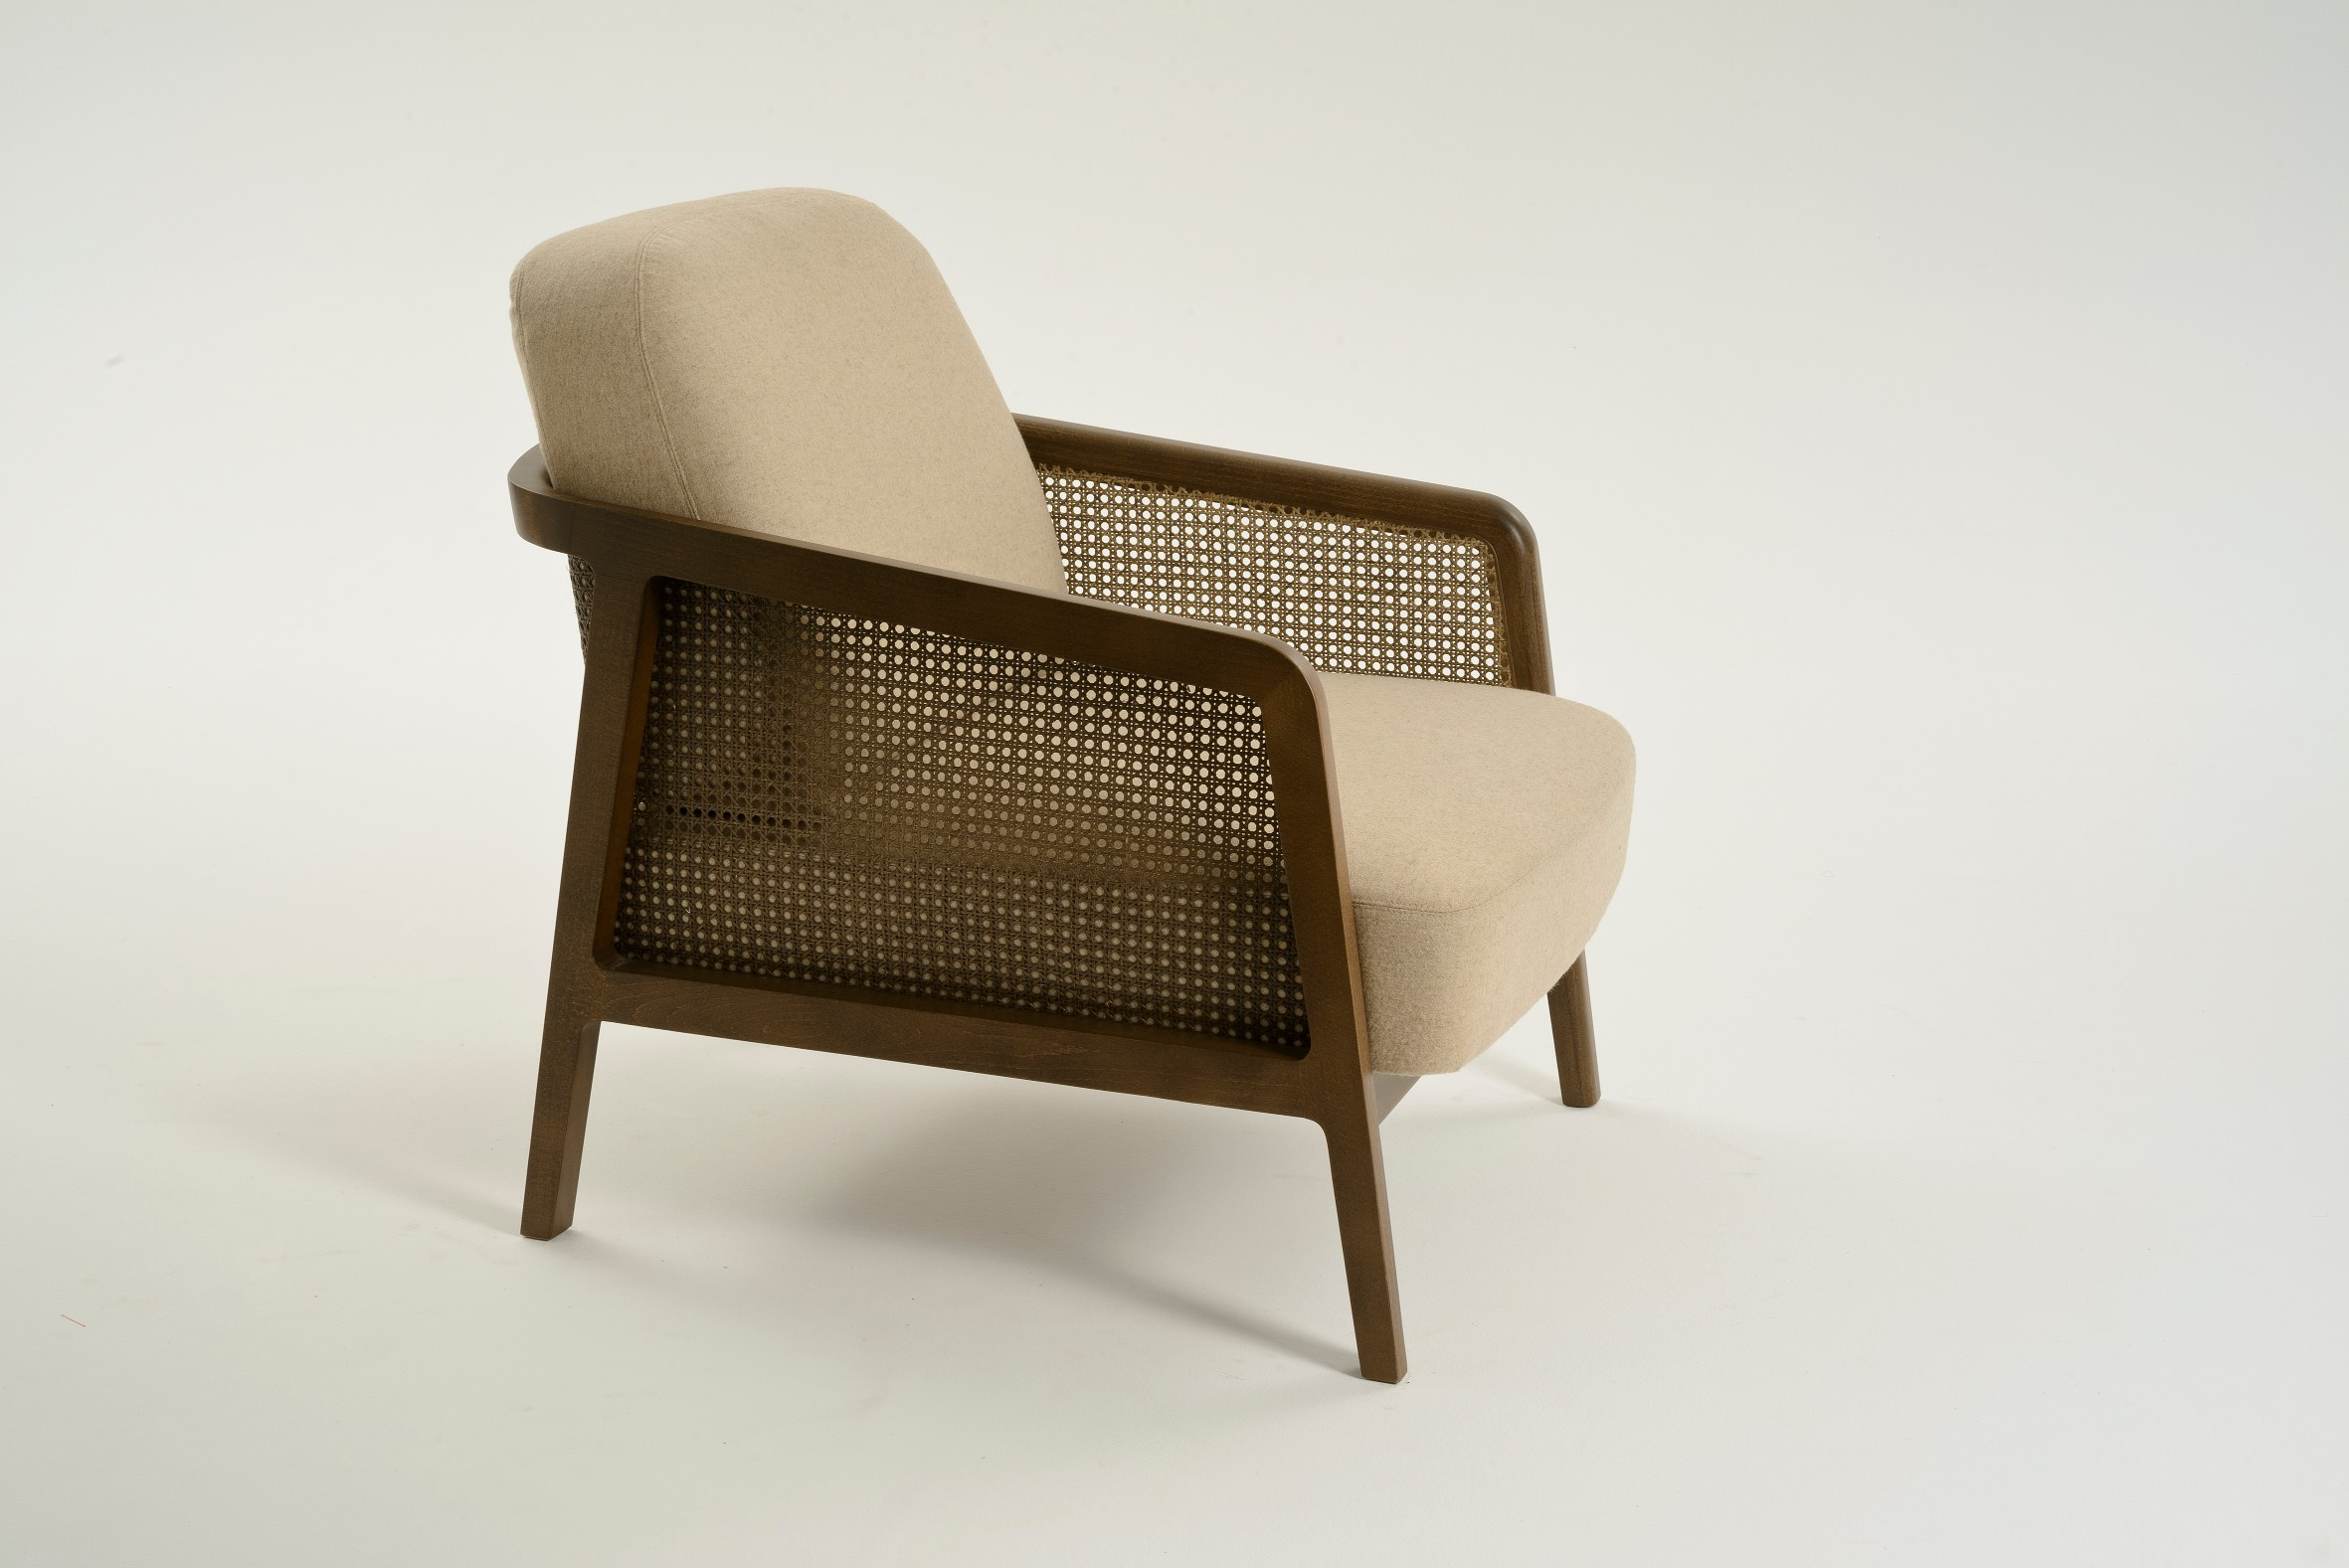 """Vienna Lounge Armchair - A living room armchair in wood and straw, that recalls the exclusive Viennese club atmosphere at the end of 19th century but in a contemporary key. Vienna is an extraordinarily comfortable and elegant lounge armchair designed by Emmanuel Gallina who loves to quote Brancusi when saying that """"simplicity is complexity resolved"""". A tribute to the renowned Italian talent constantly aiming to harmonise beauty and functionality. A range of fabrics and colours are available for the upholstery, prices may vary. Please feel free to contact for full details and other enquiries. 